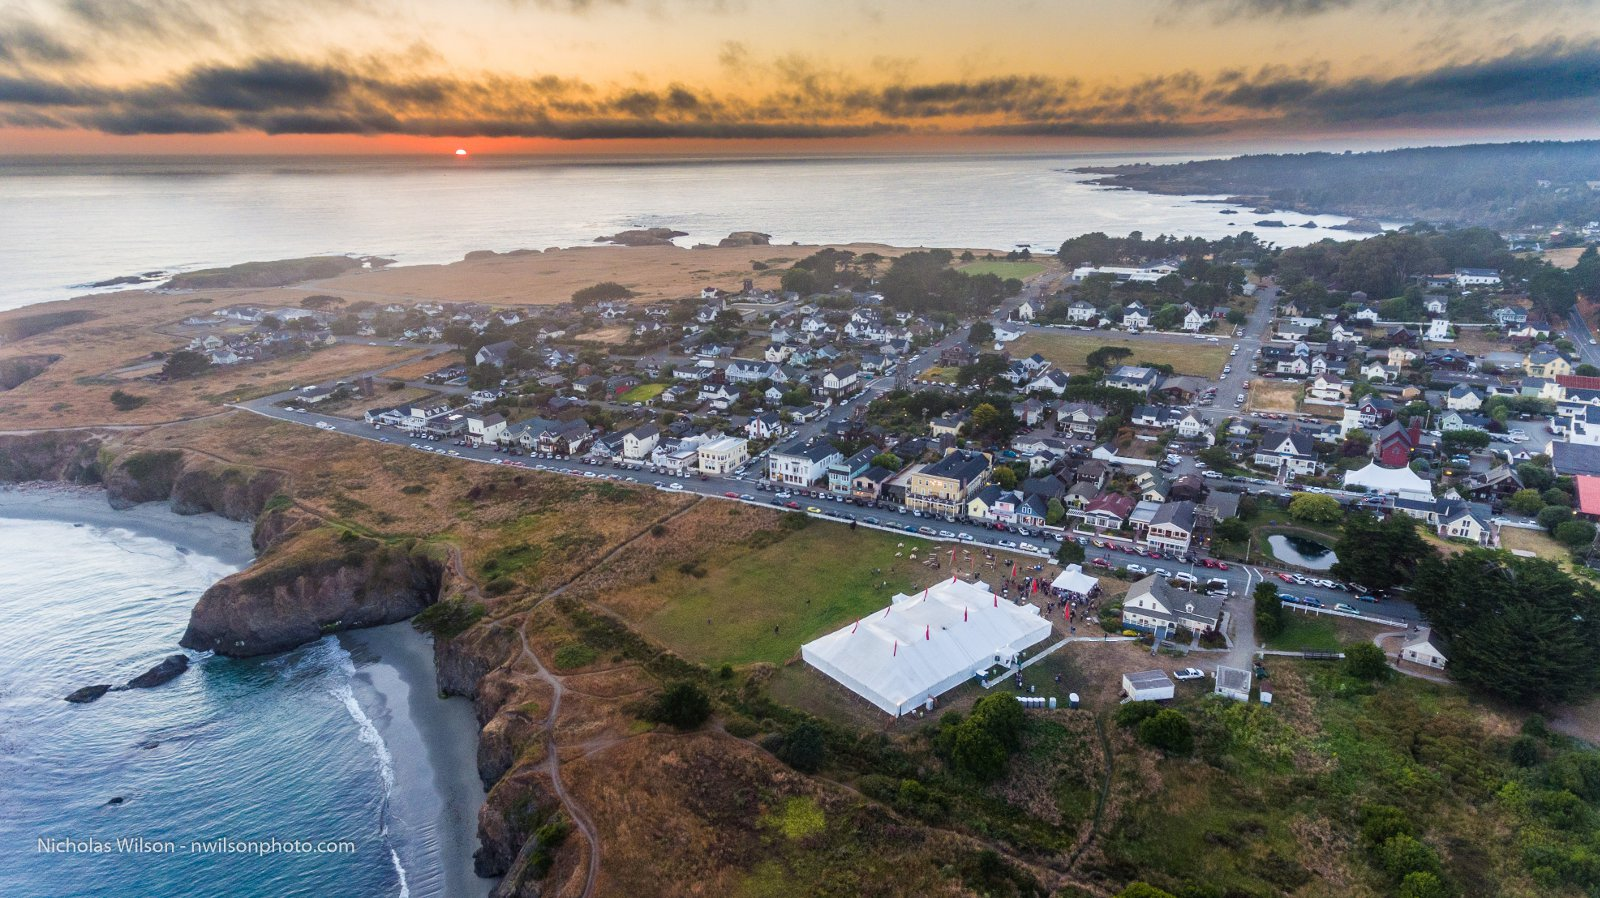 Aerial view as the sun sets over Mendocino on Opening Night of the 2016 Mendocino Music Festival, July 9, 2016.